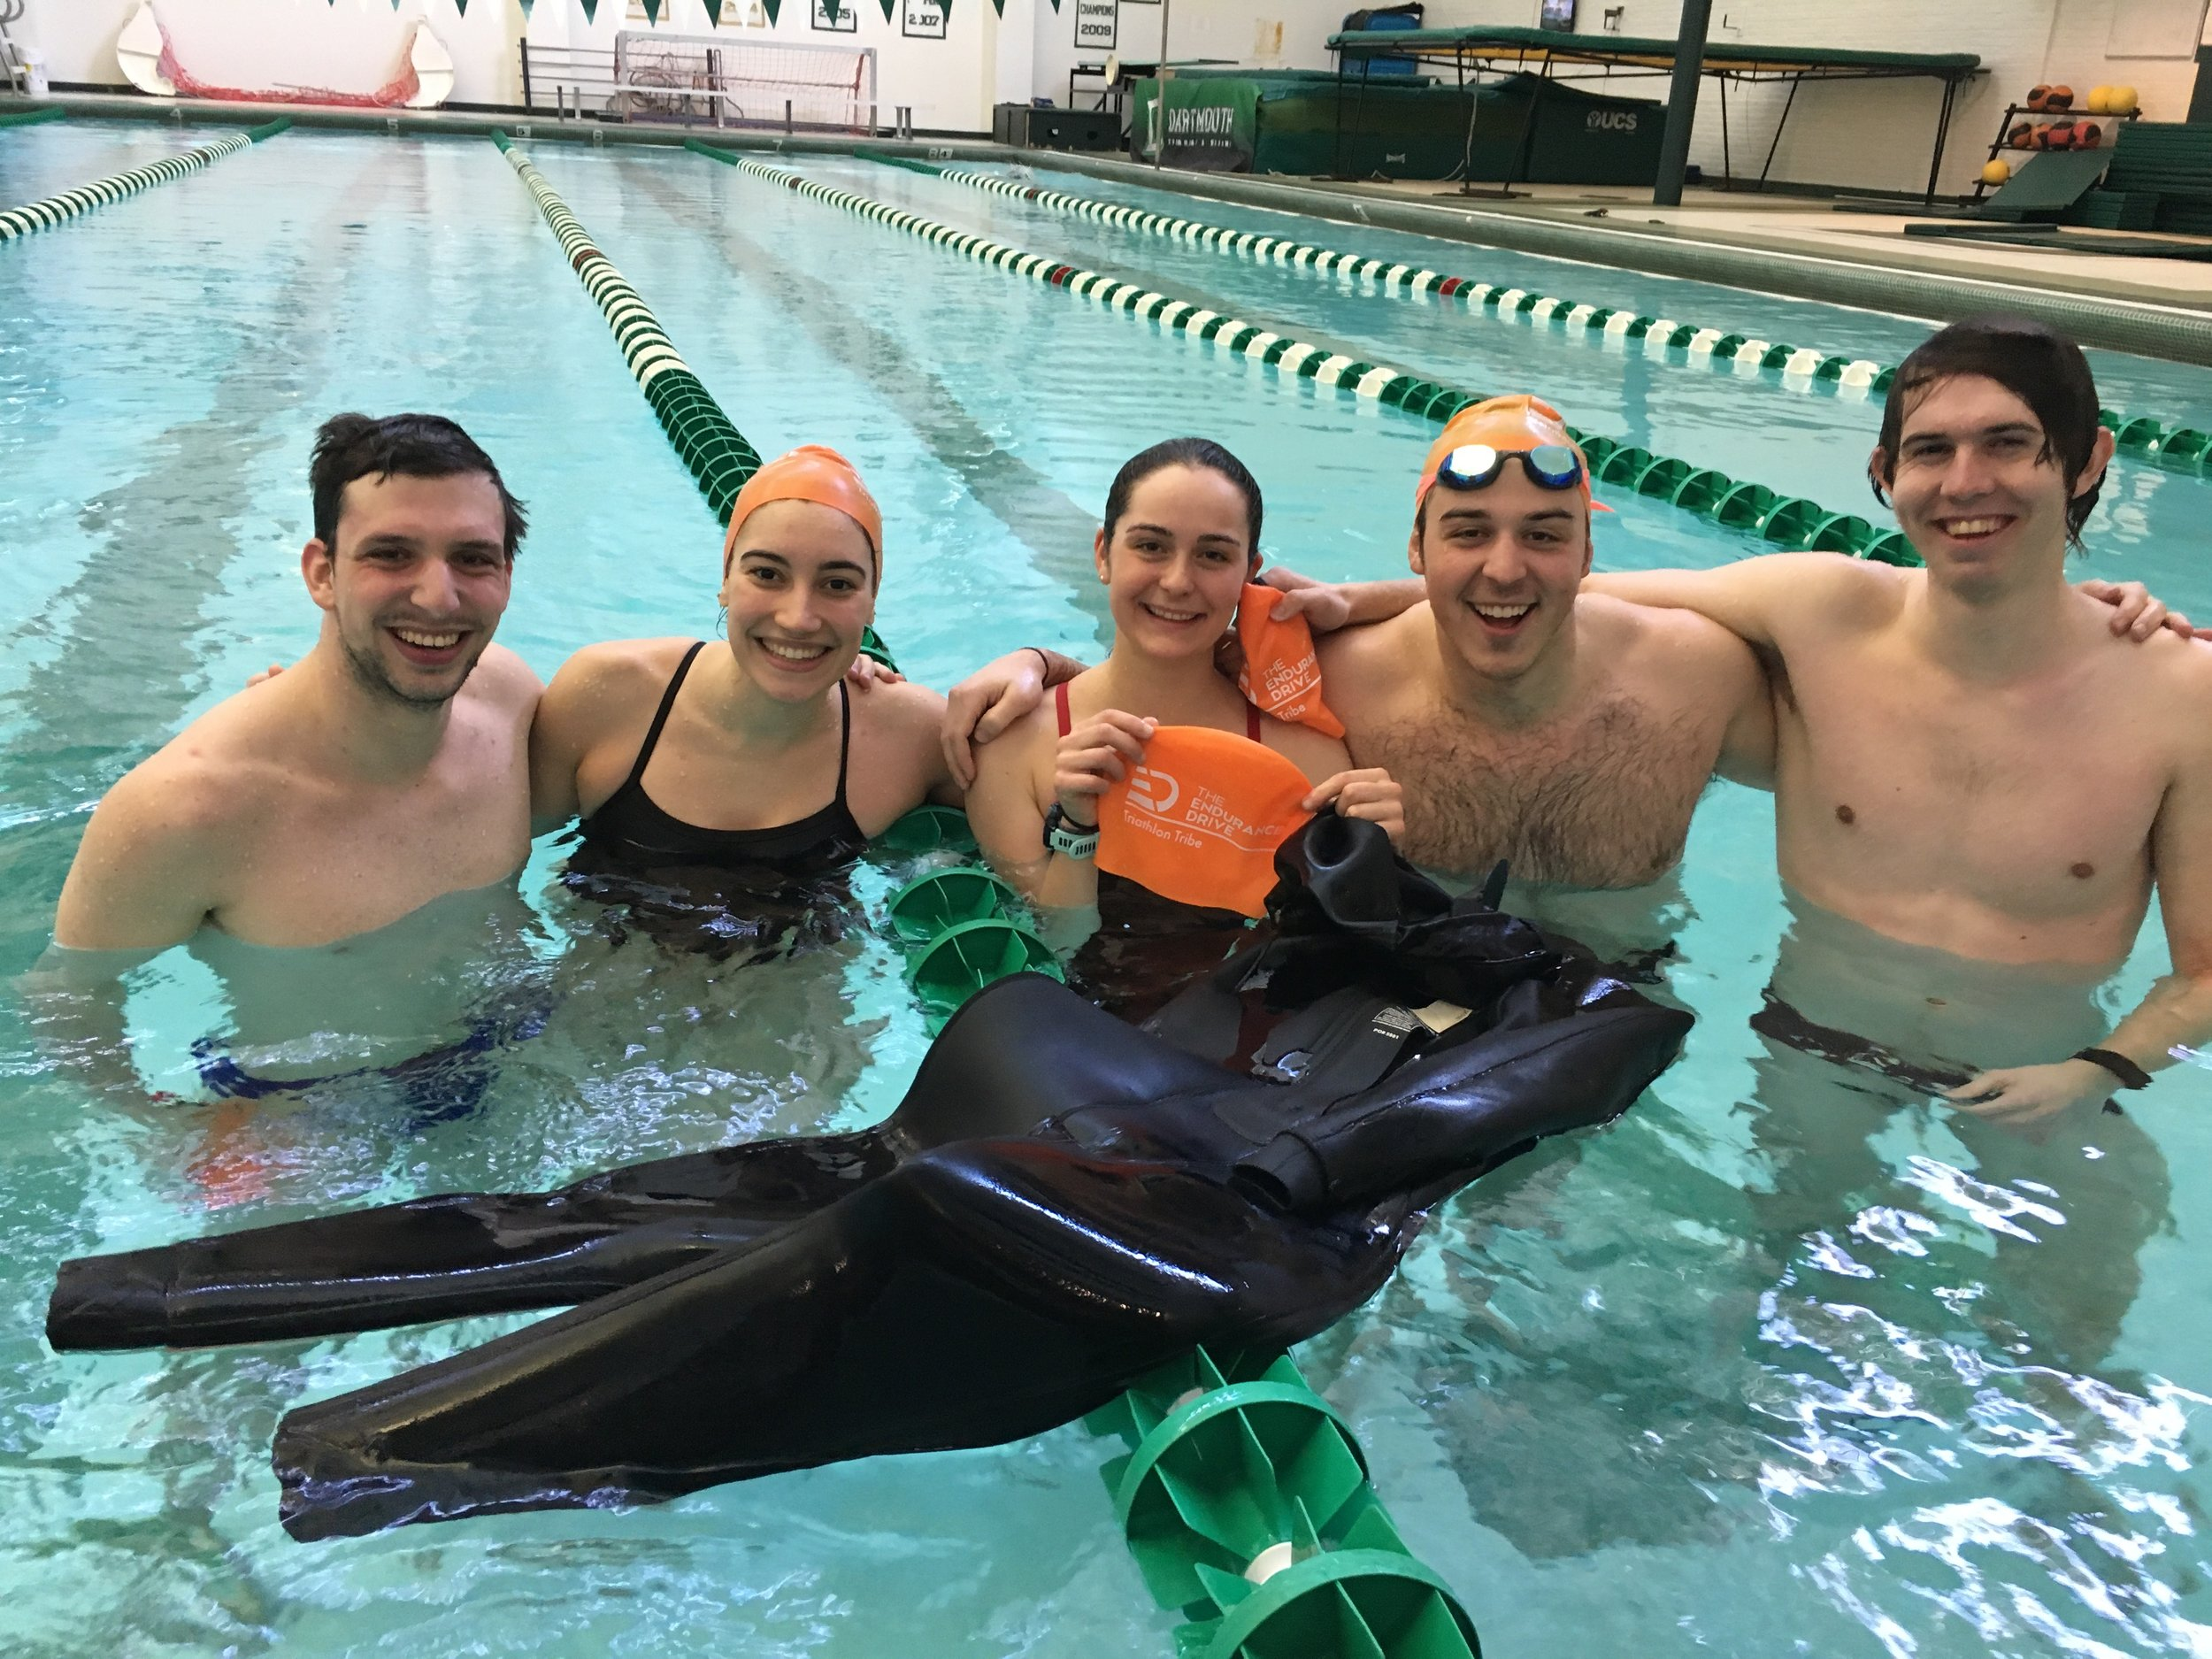 Endurance Drive triathletes swim pool training